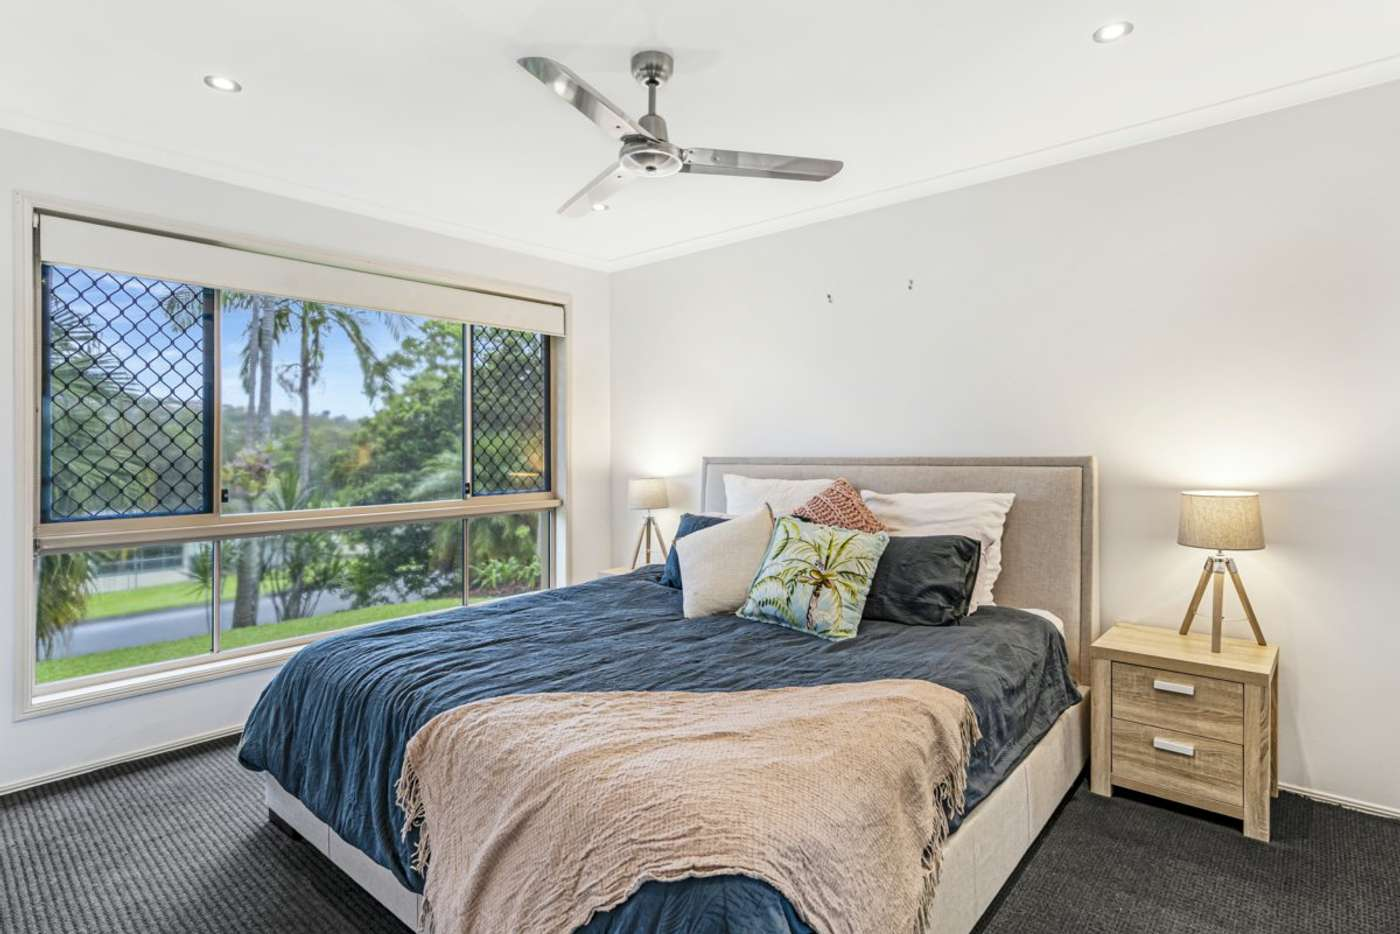 Fifth view of Homely house listing, 23 Virgil Court, Worongary QLD 4213